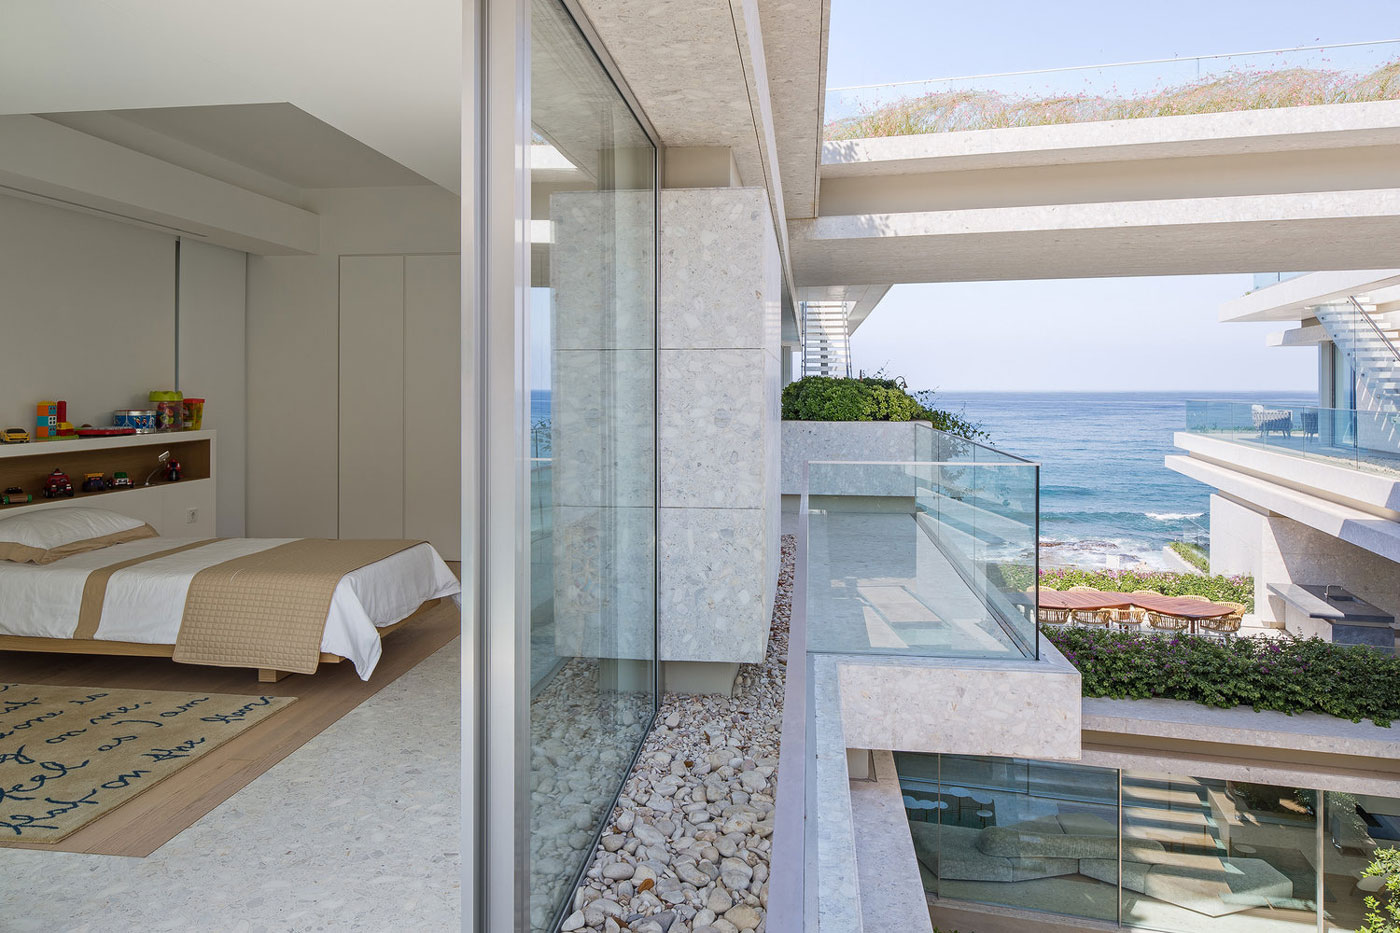 Sea views, bedroom